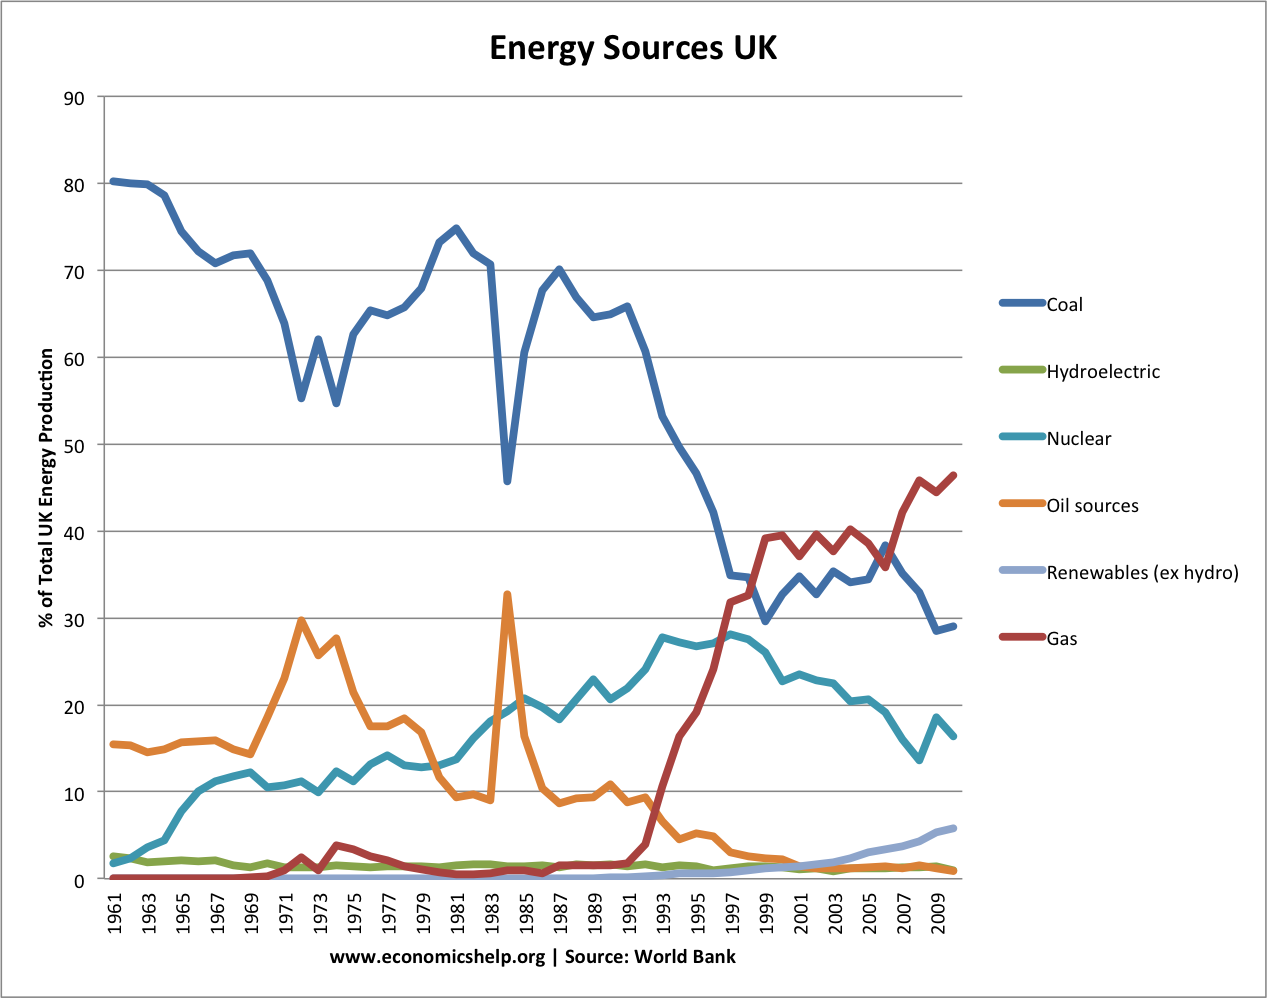 Energy Sources in UK